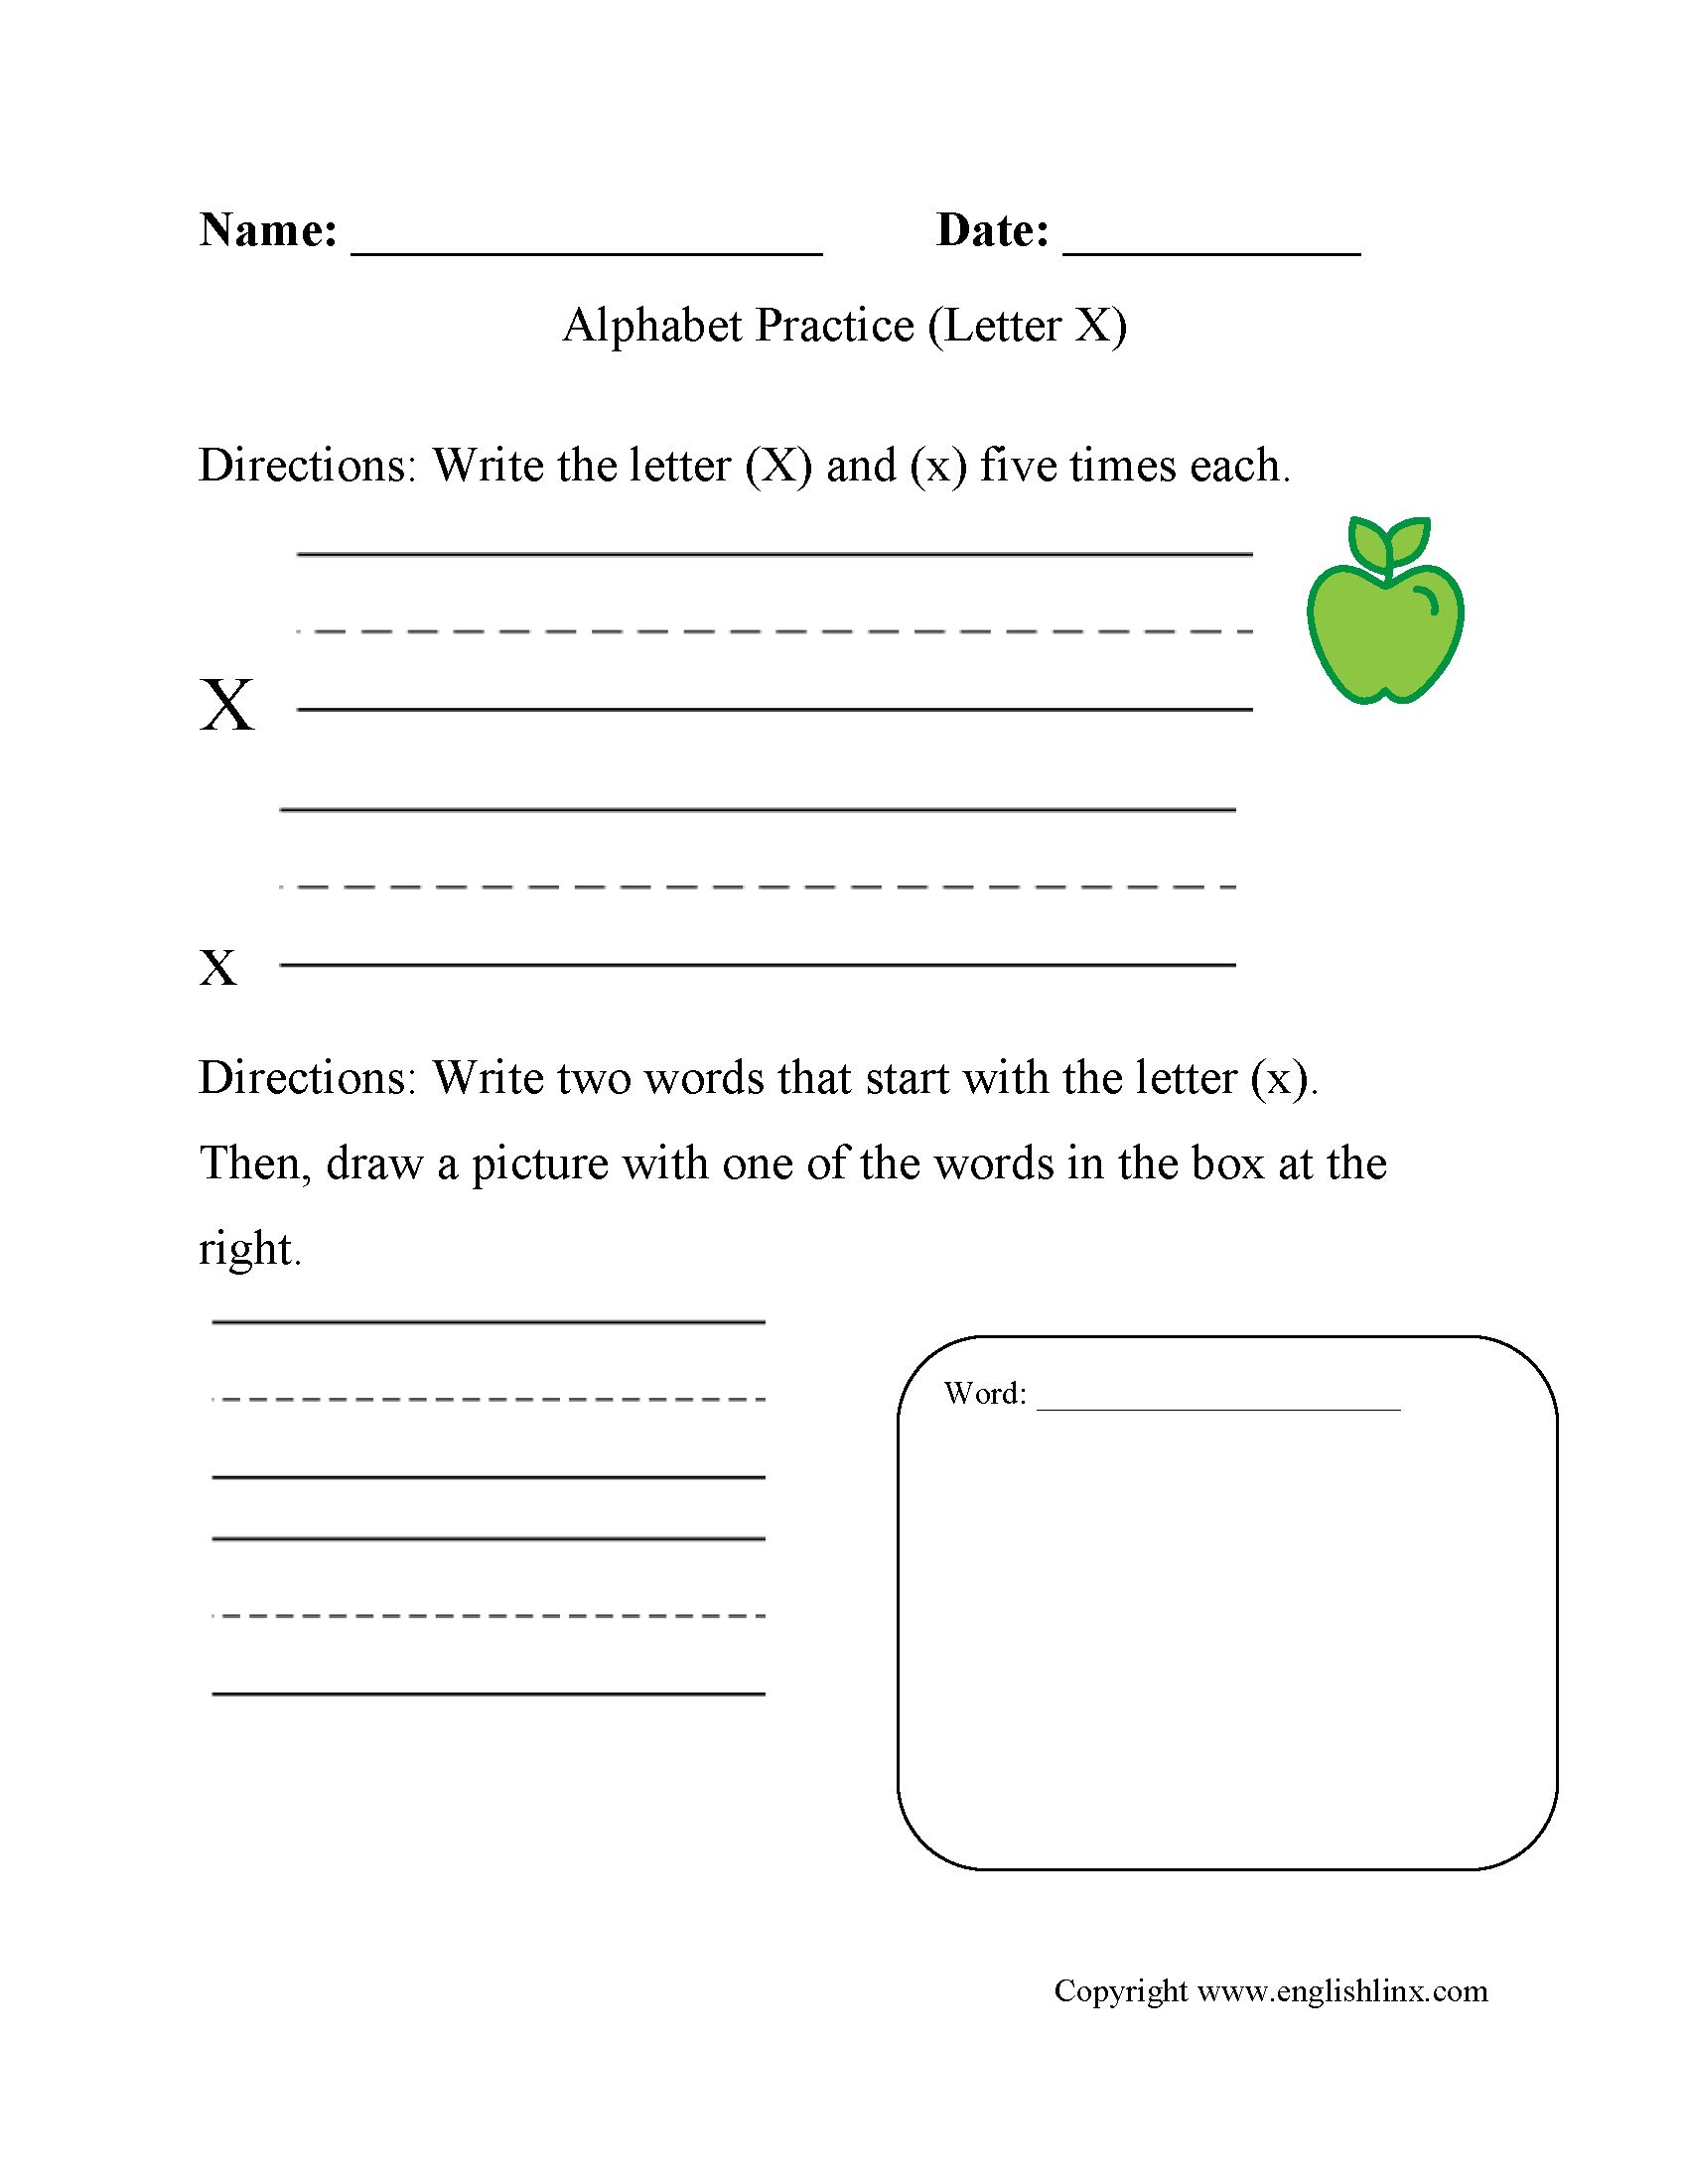 Name Writing Practice Worksheets